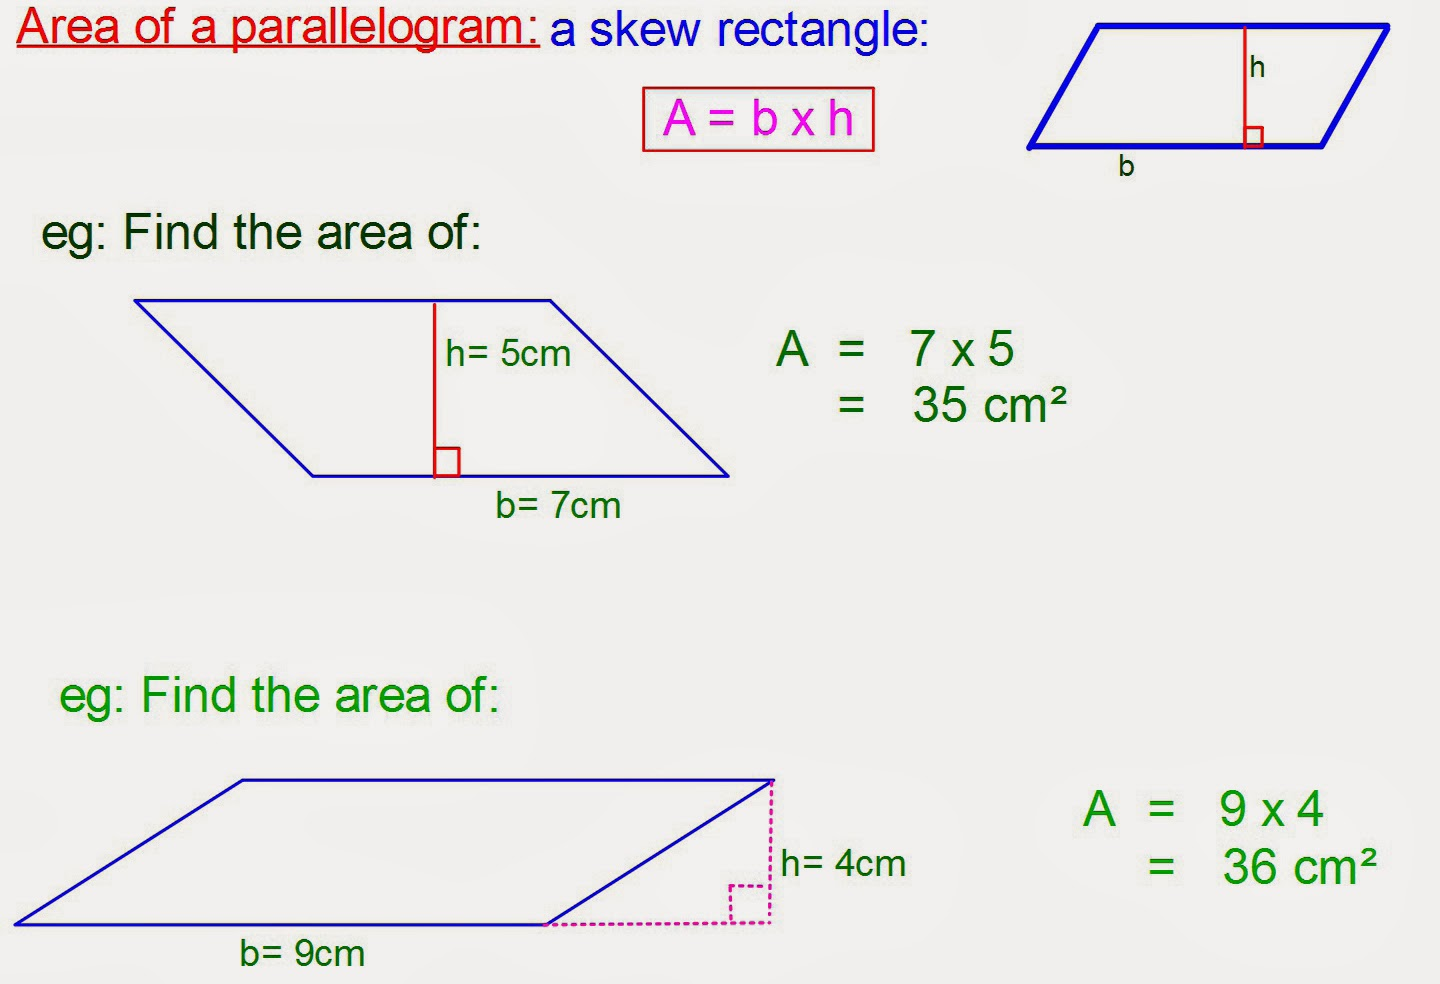 Parallelogram Area Area of a parallelogram